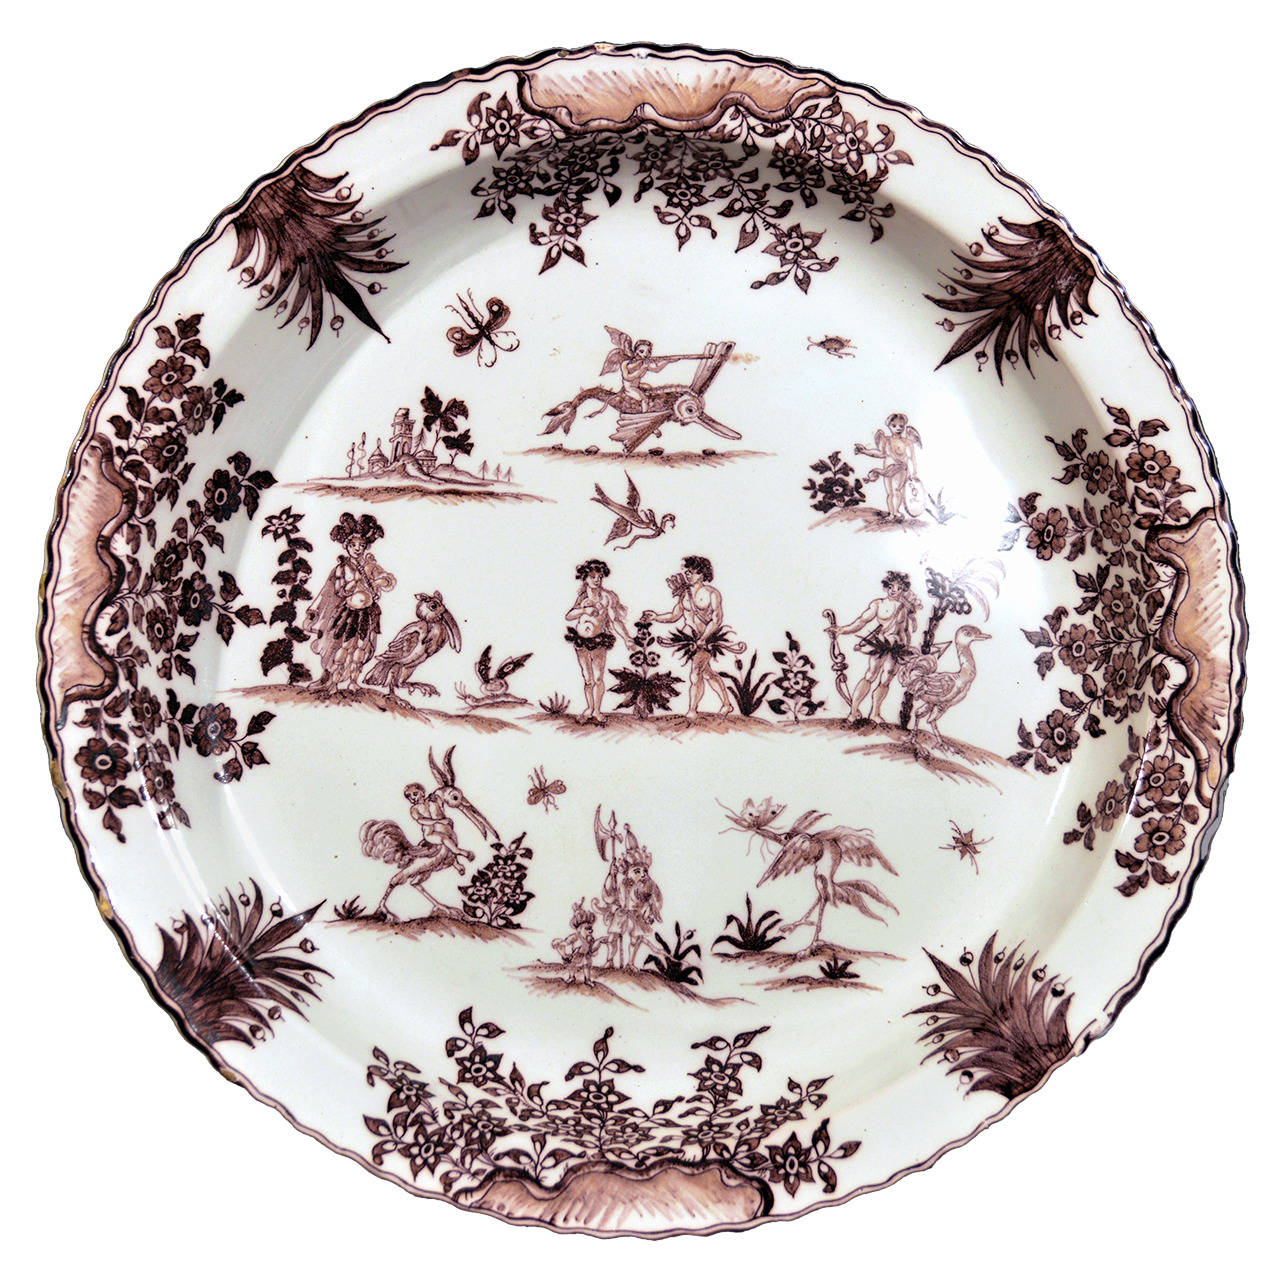 Edme Samson et Cie French Faience Shallow Basin in the Style of Moustier